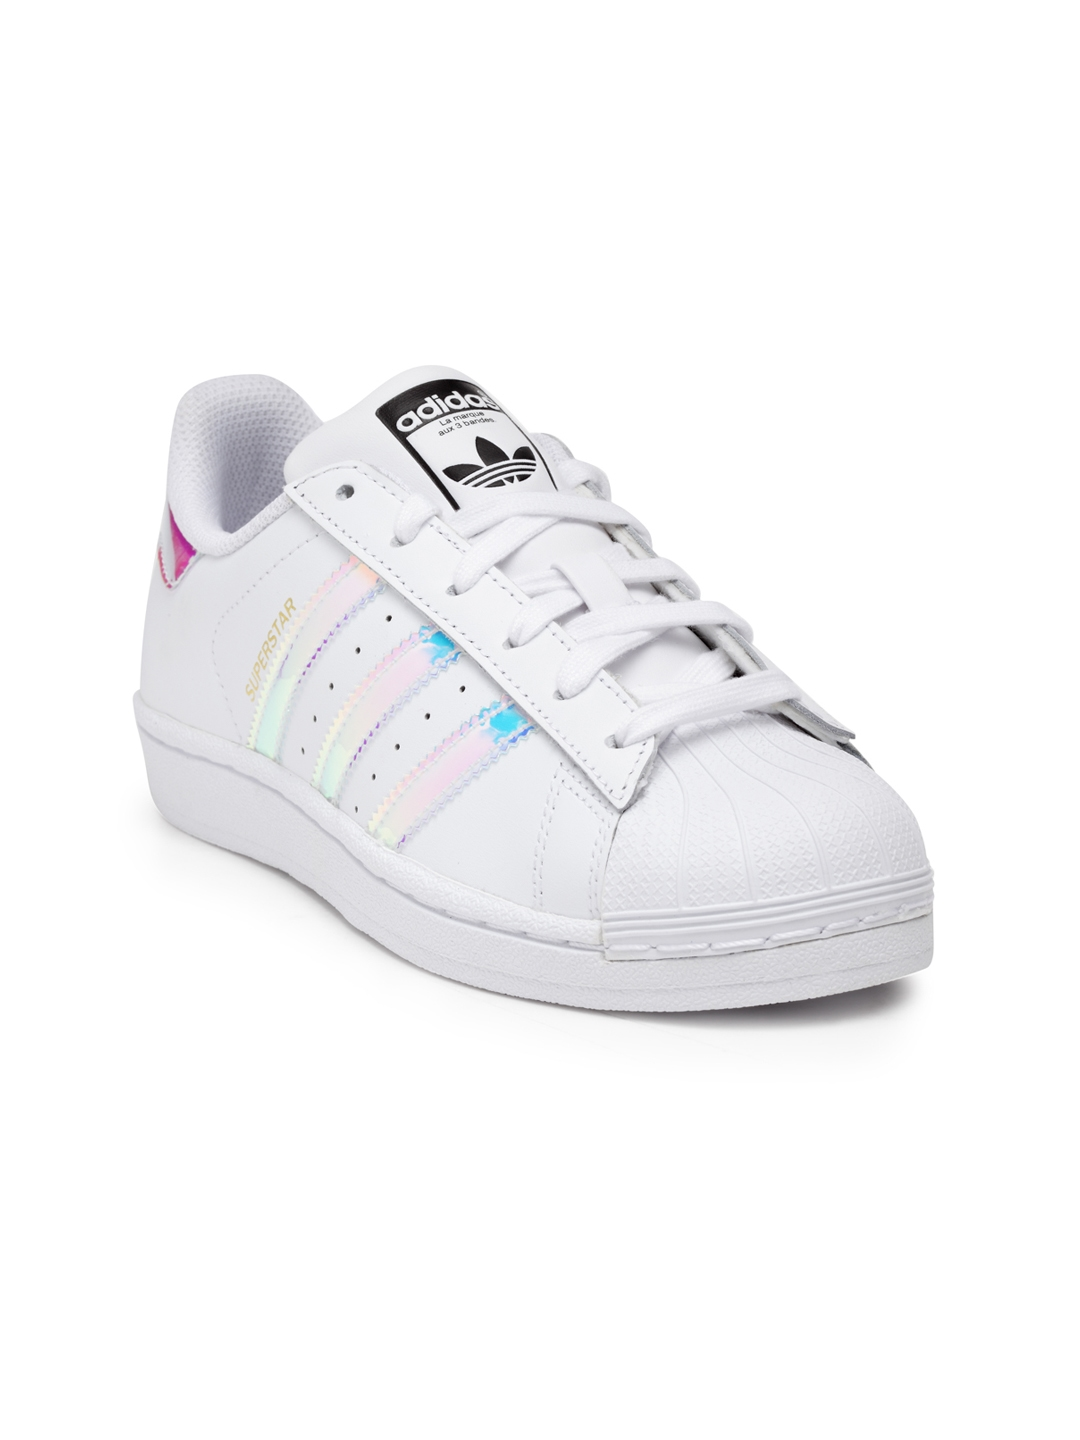 714283d3ce0a Buy ADIDAS Originals Kids White Superstar Sneakers - Casual Shoes ...